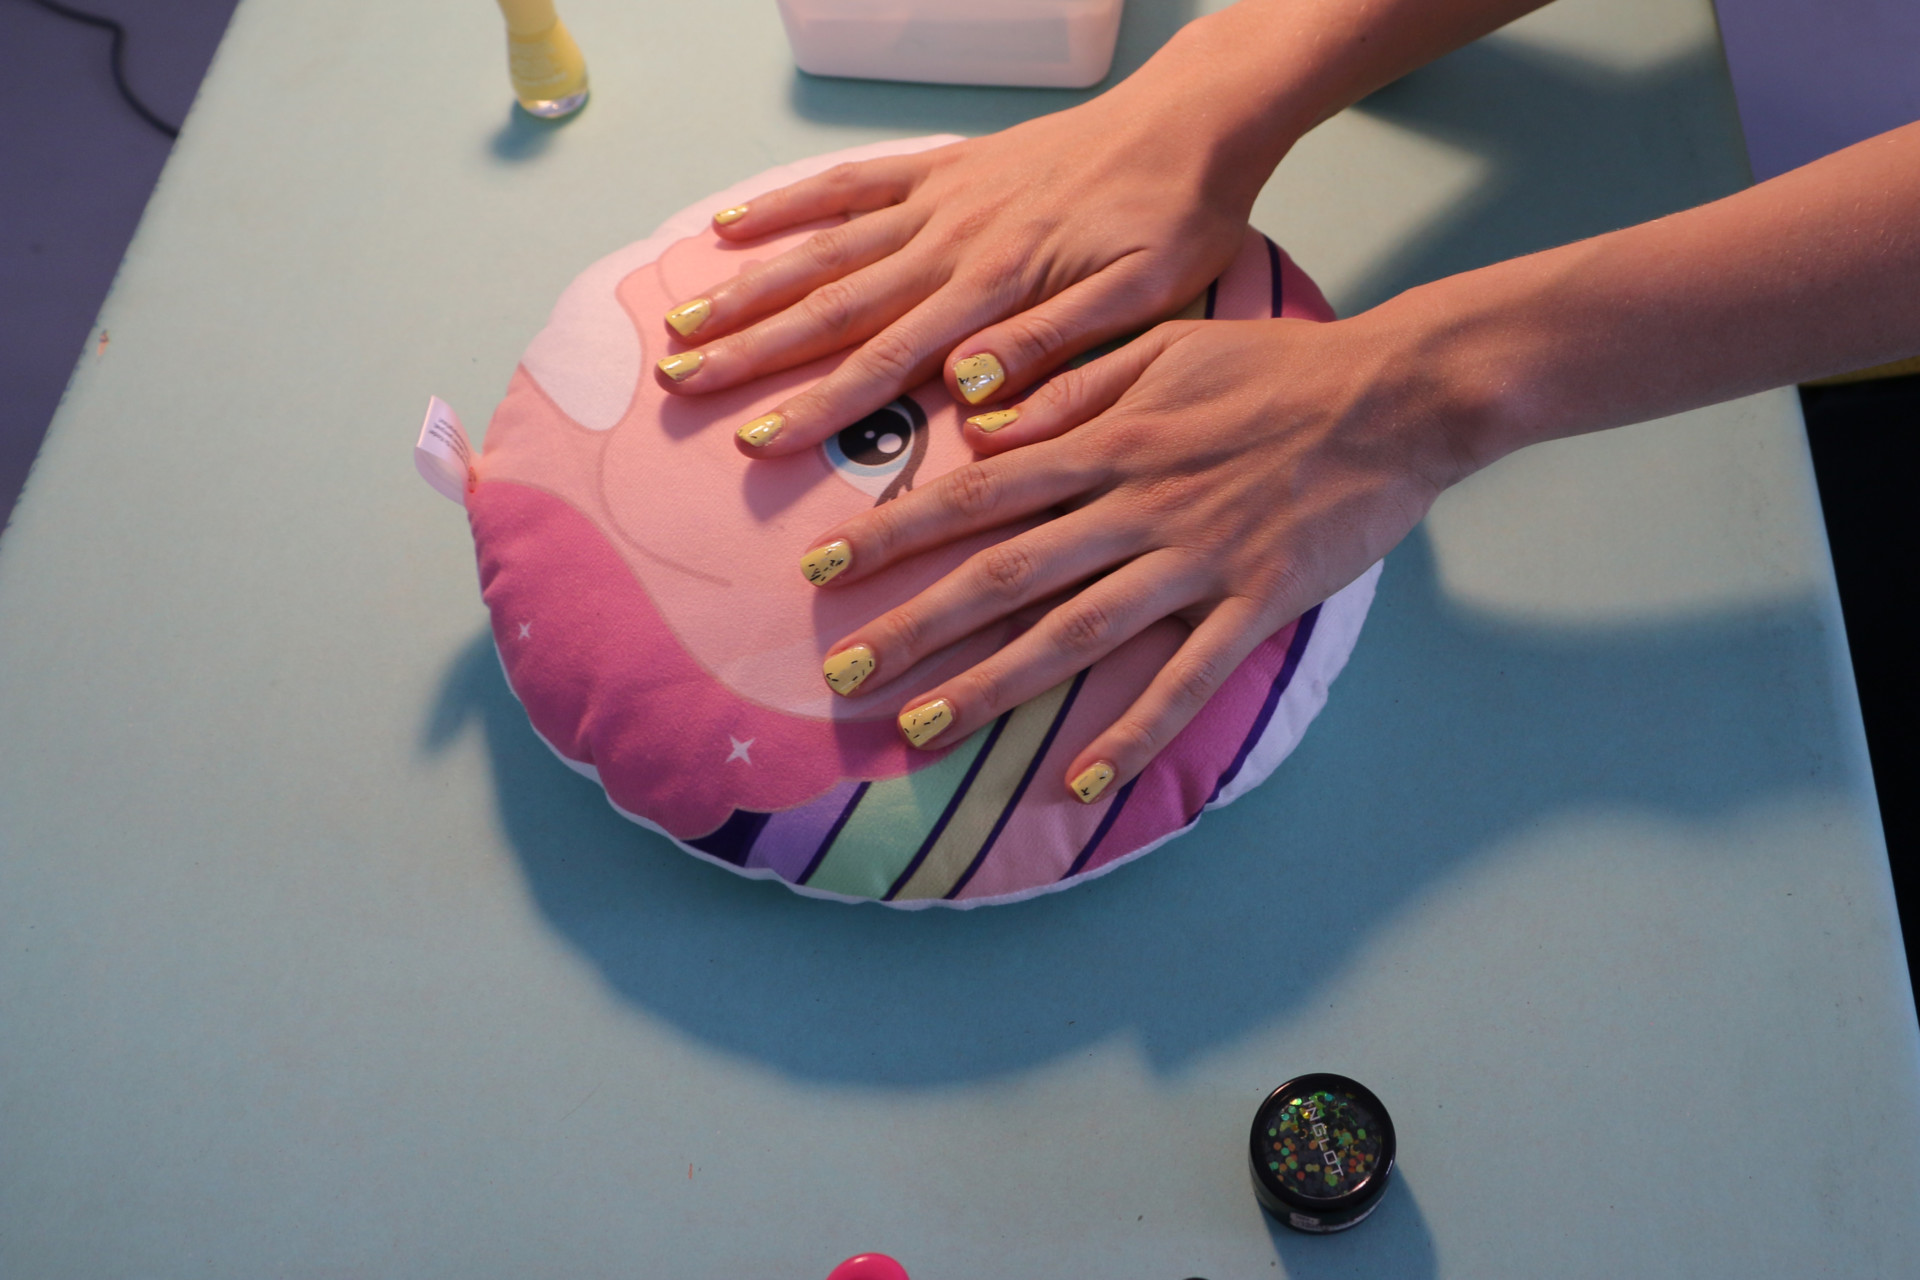 Membrane Nails am Bahnhof organised // curated // staged by Natalija Paunic